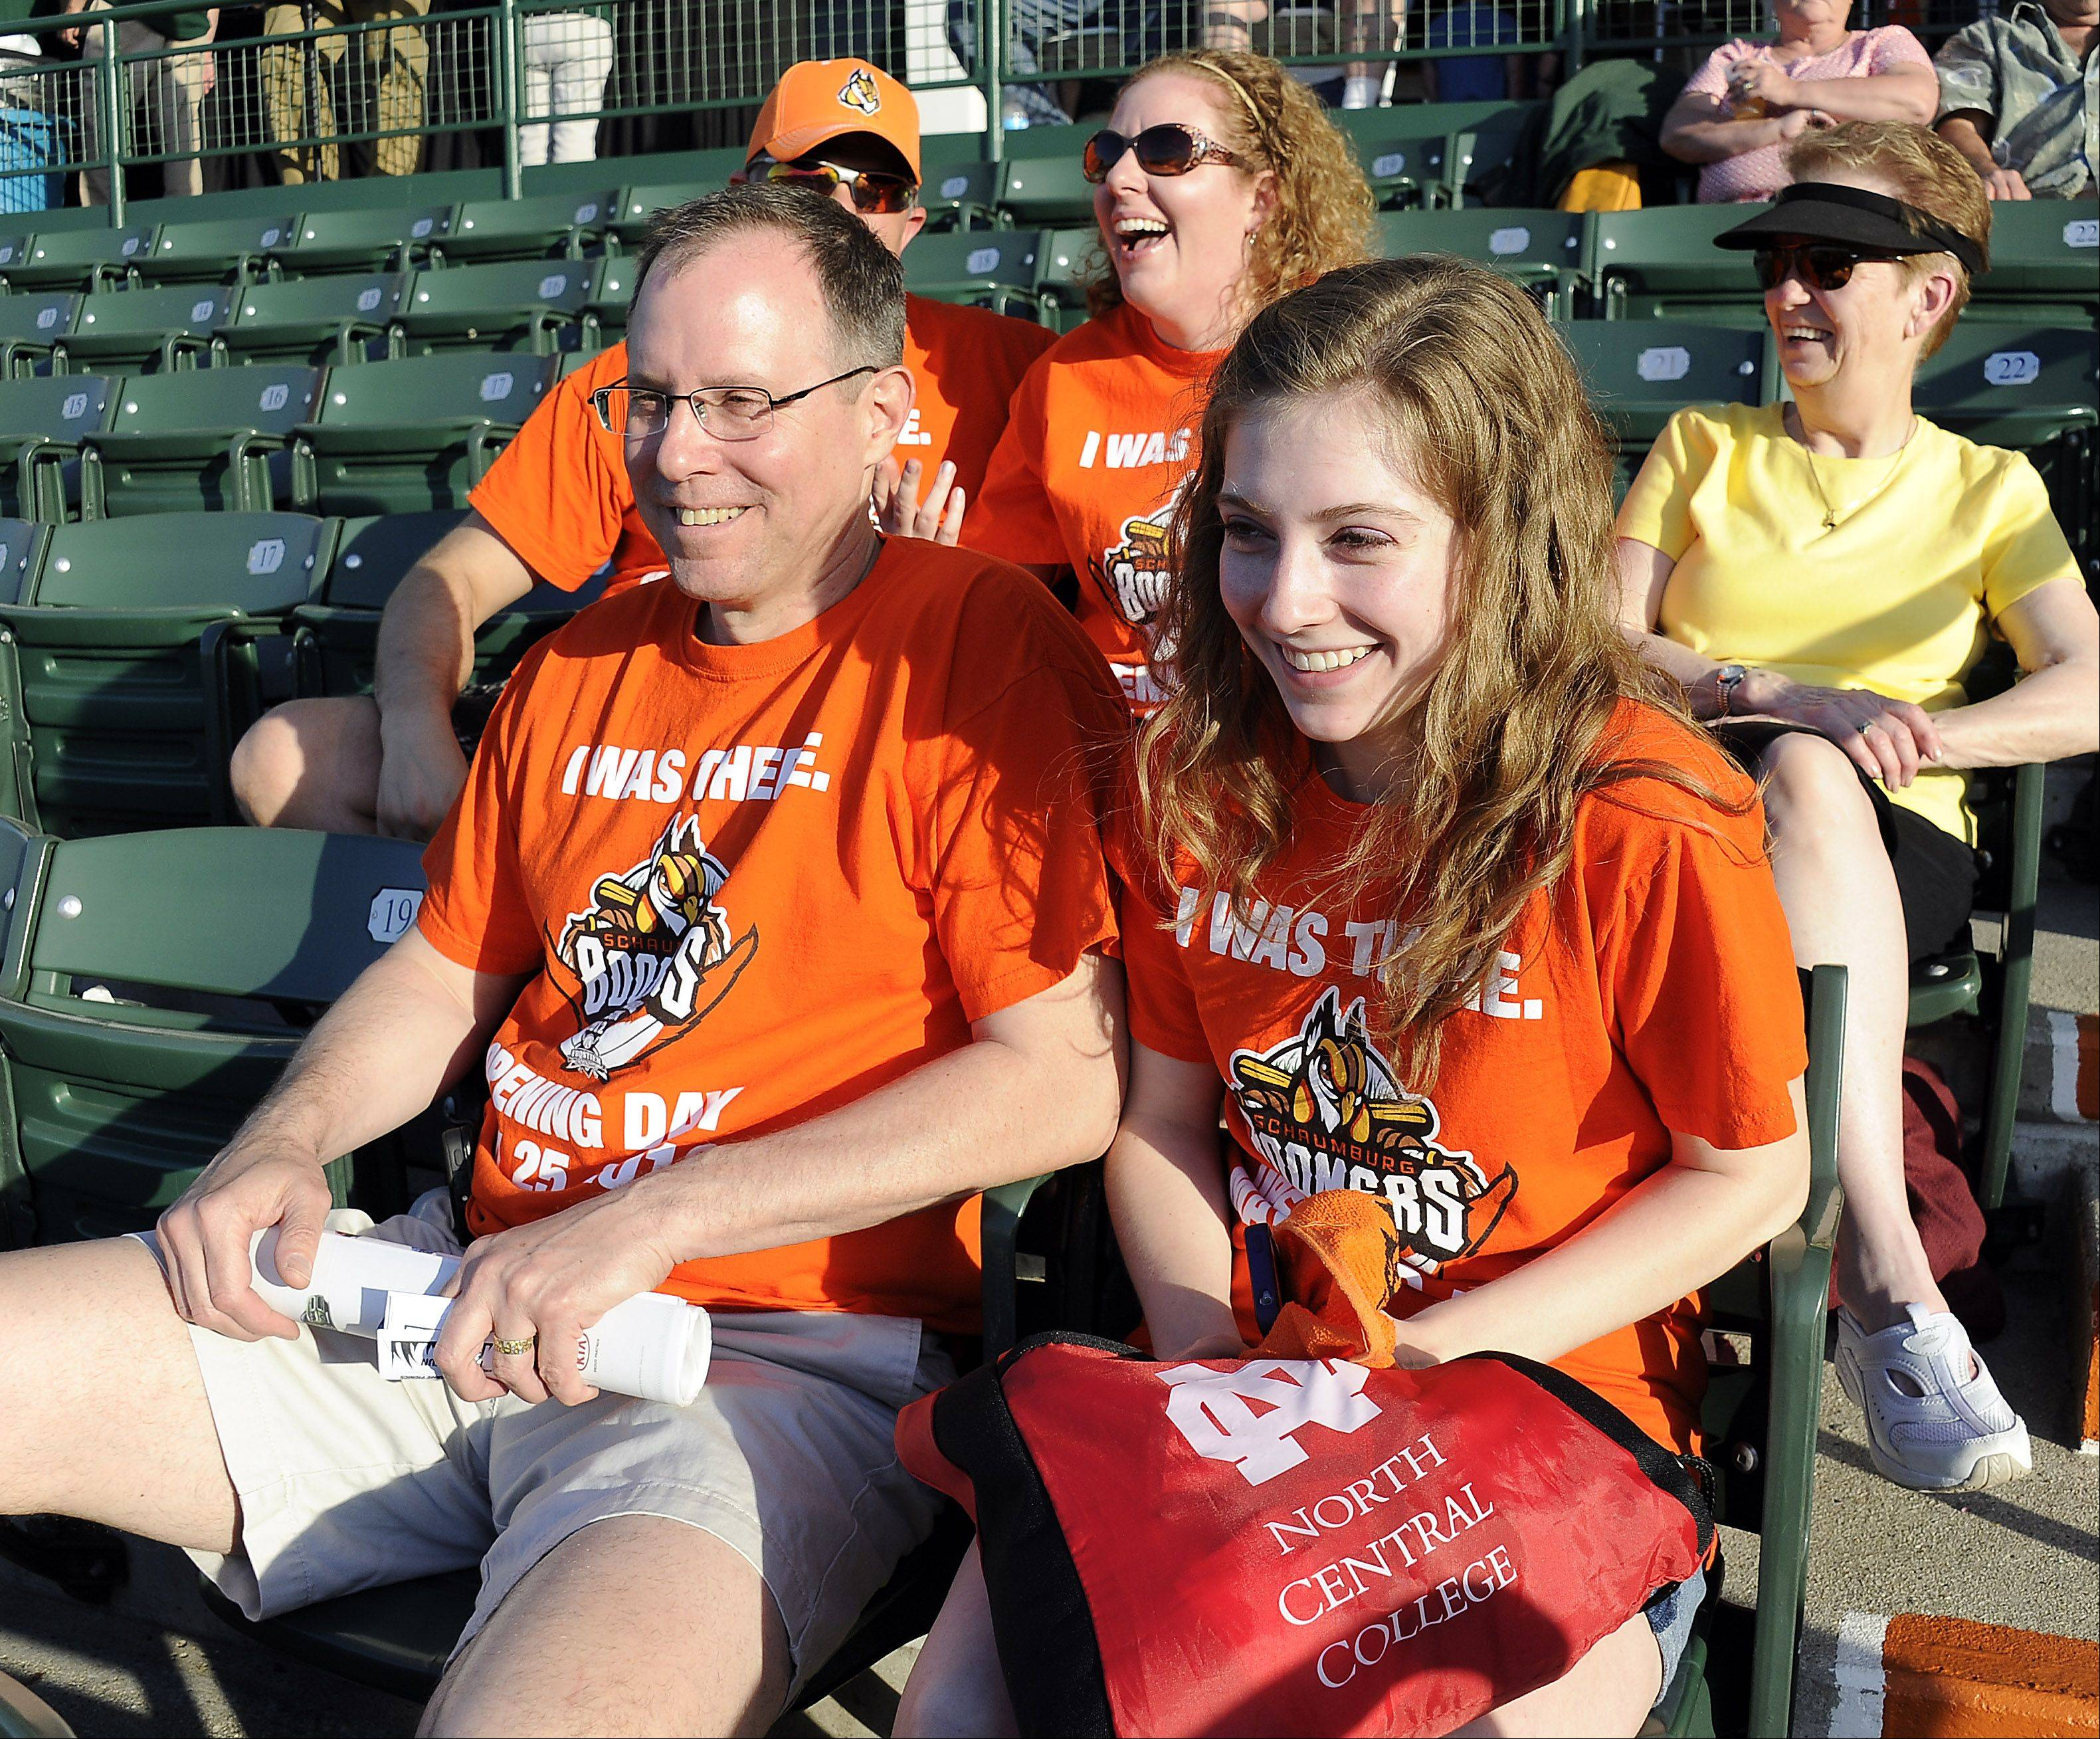 Boomers' fans Lauren Kolar, 20, and her dad Dan of Itasca were all excited about Opening Day as they take in the game between the Boomers and the Windy City Thunderbolts on Thursday.